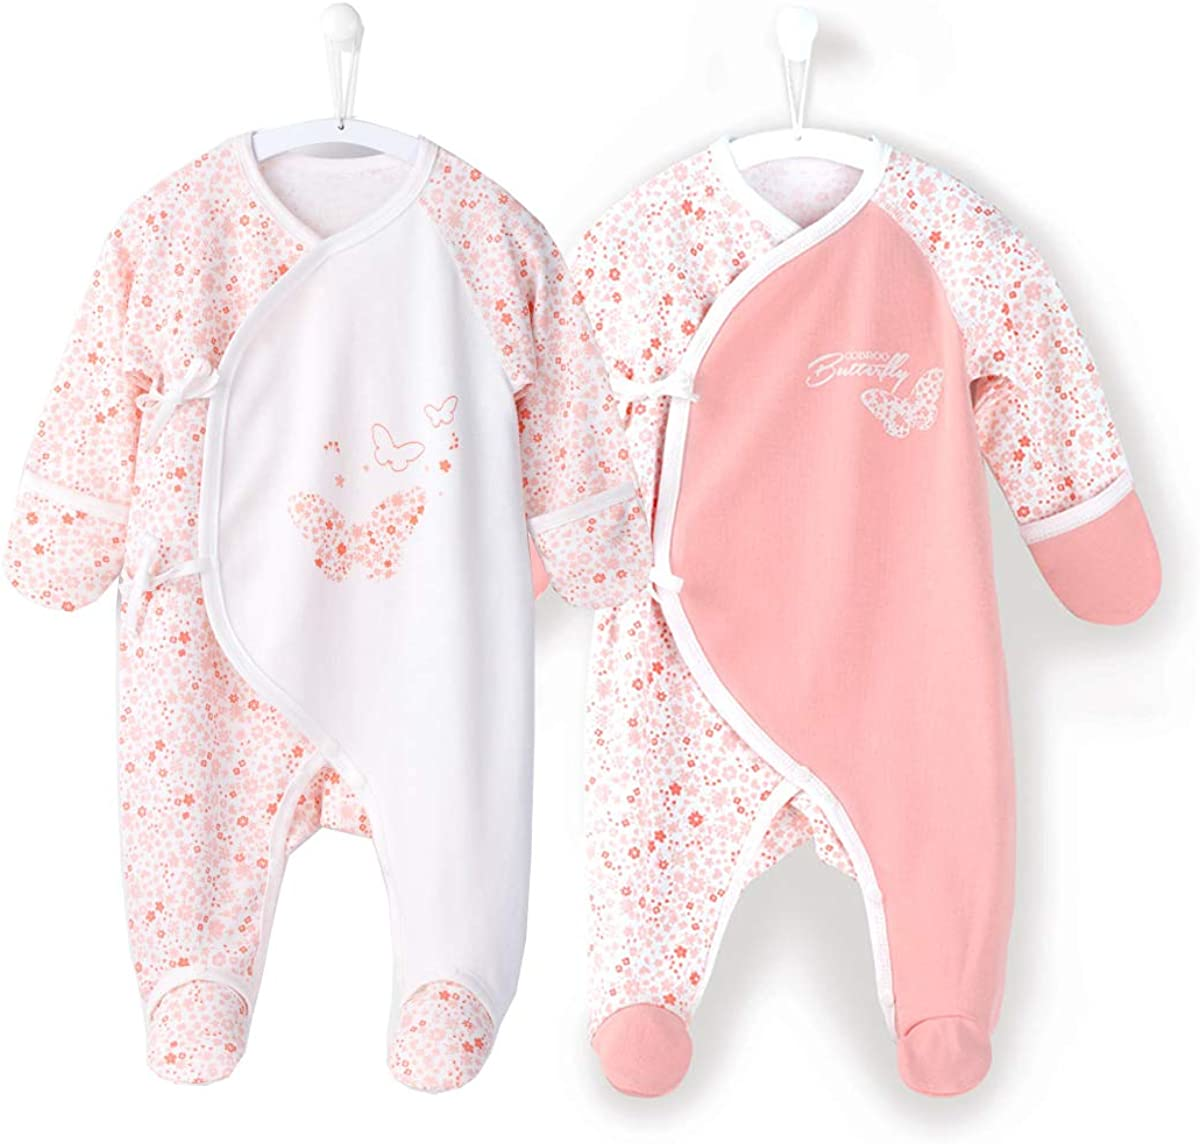 COBROO Baby Footed Sleeper with Mittens 100/% Cotton Allover Cloud Print Side-Belt Baby Pajamas 0-6 Months